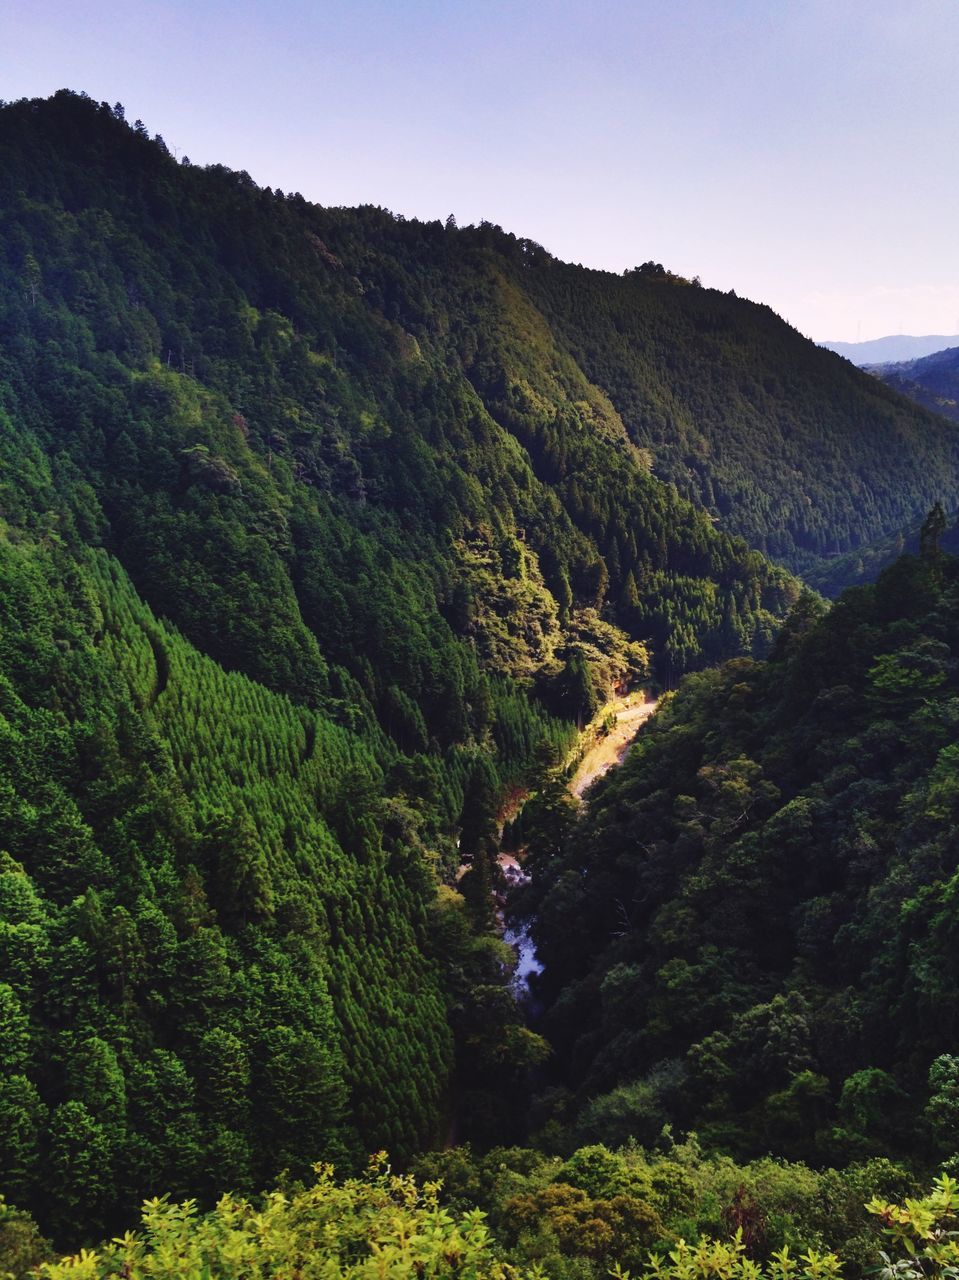 mountain, nature, beauty in nature, tranquility, tranquil scene, scenics, landscape, forest, lush foliage, mountain range, plant, tree, outdoors, day, growth, green color, no people, sky, tea crop